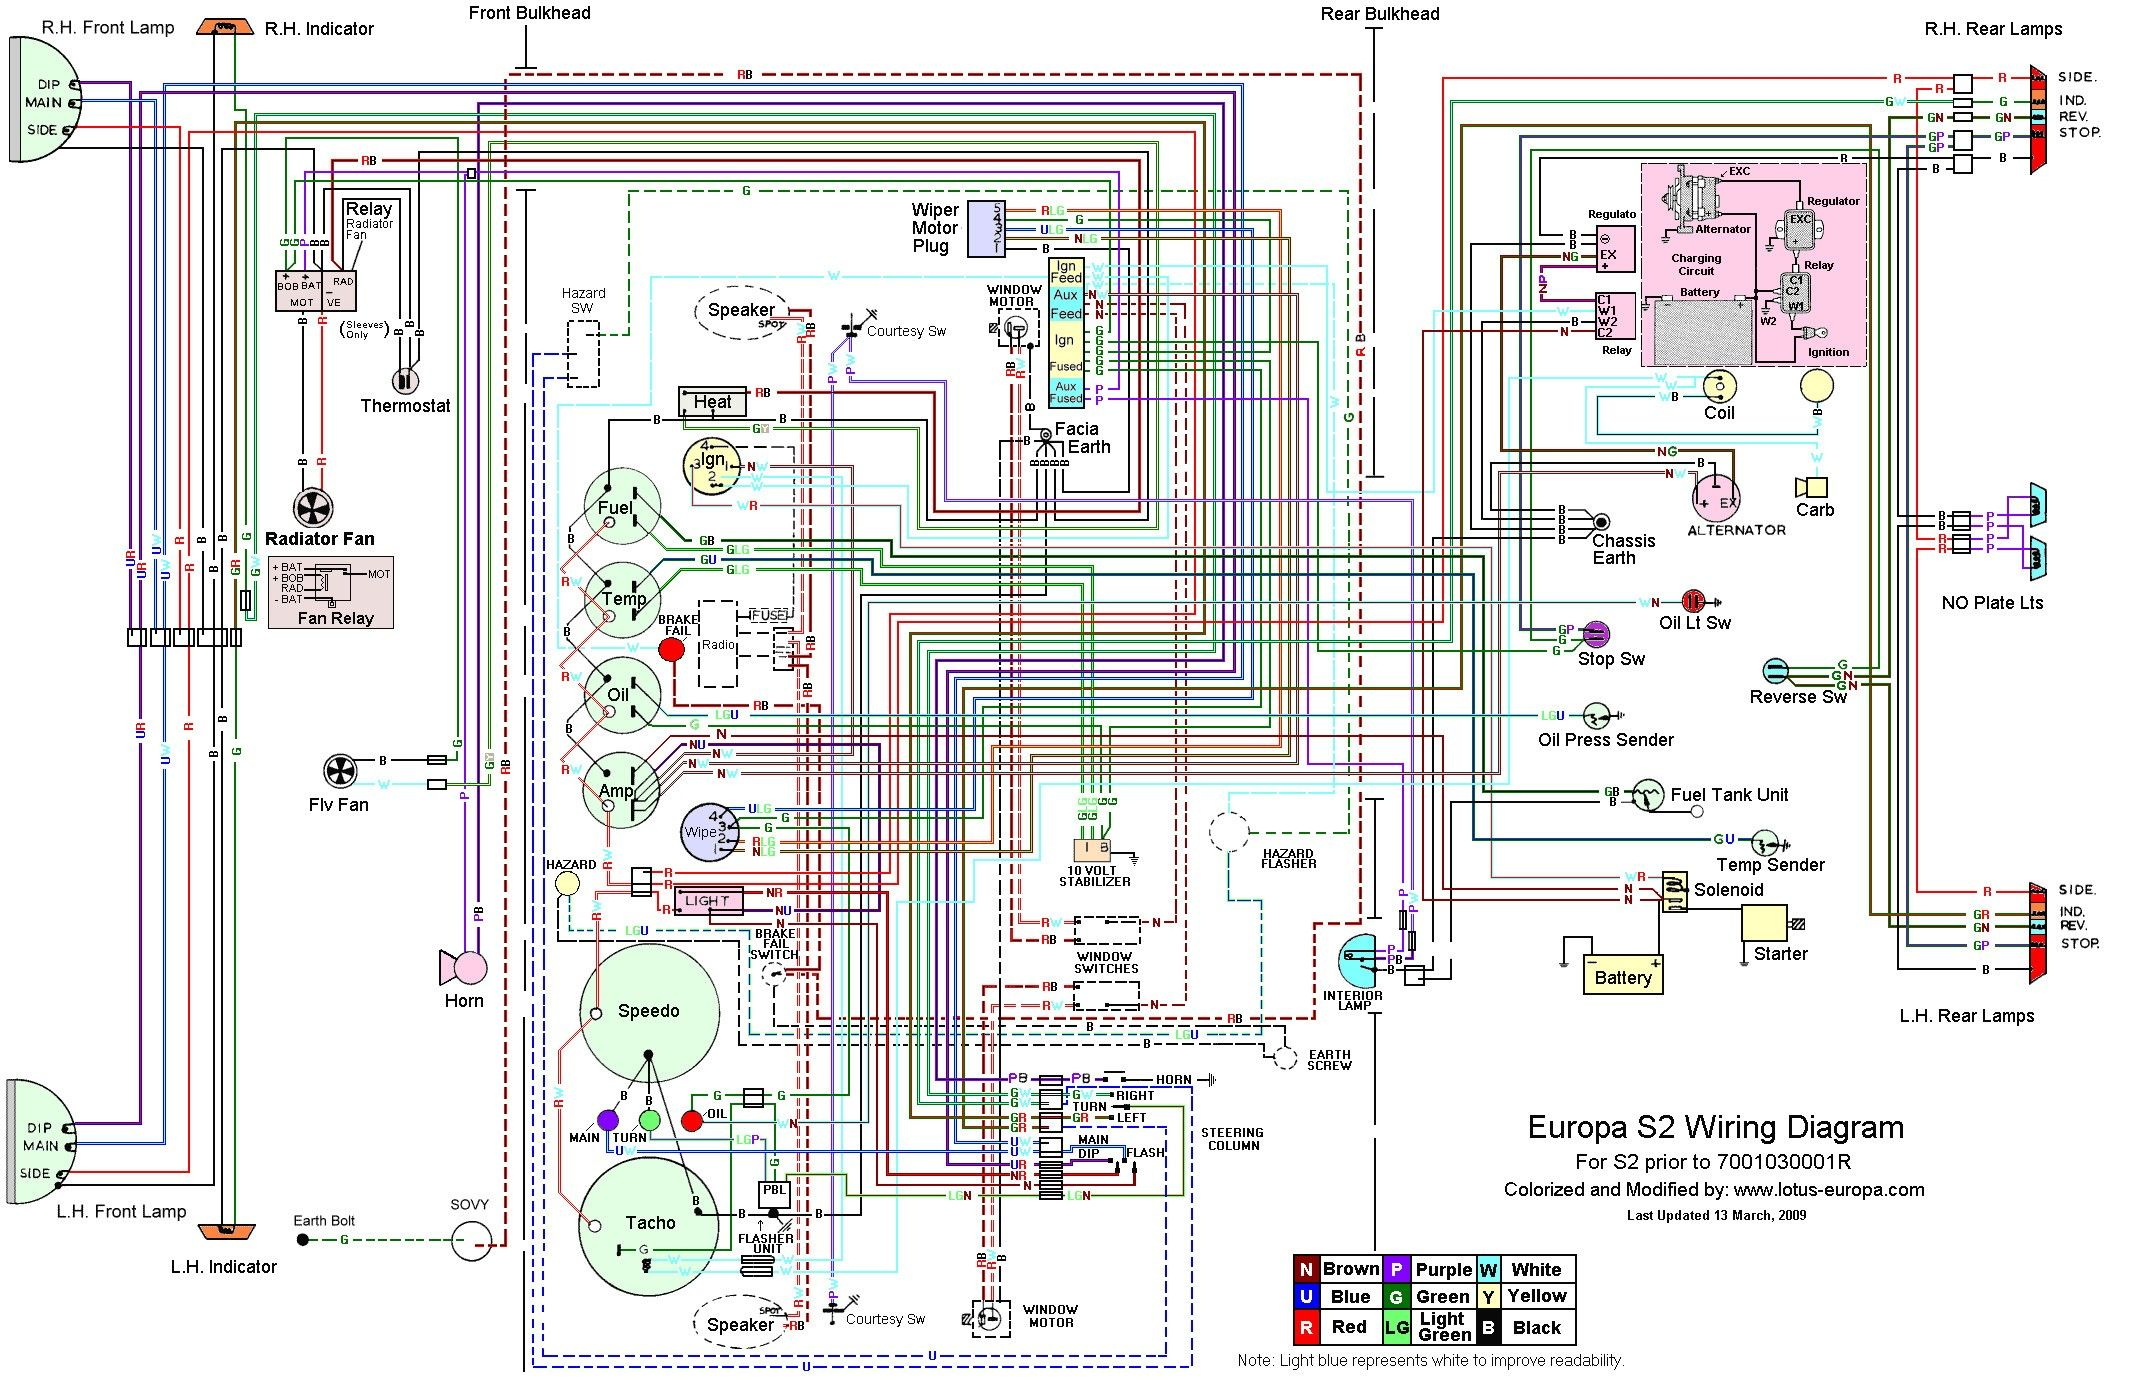 renault clio wiring diagram wiring diagram datasource renault clio 2 wiring diagram download renault clio 2 wiring diagram [ 2150 x 1380 Pixel ]